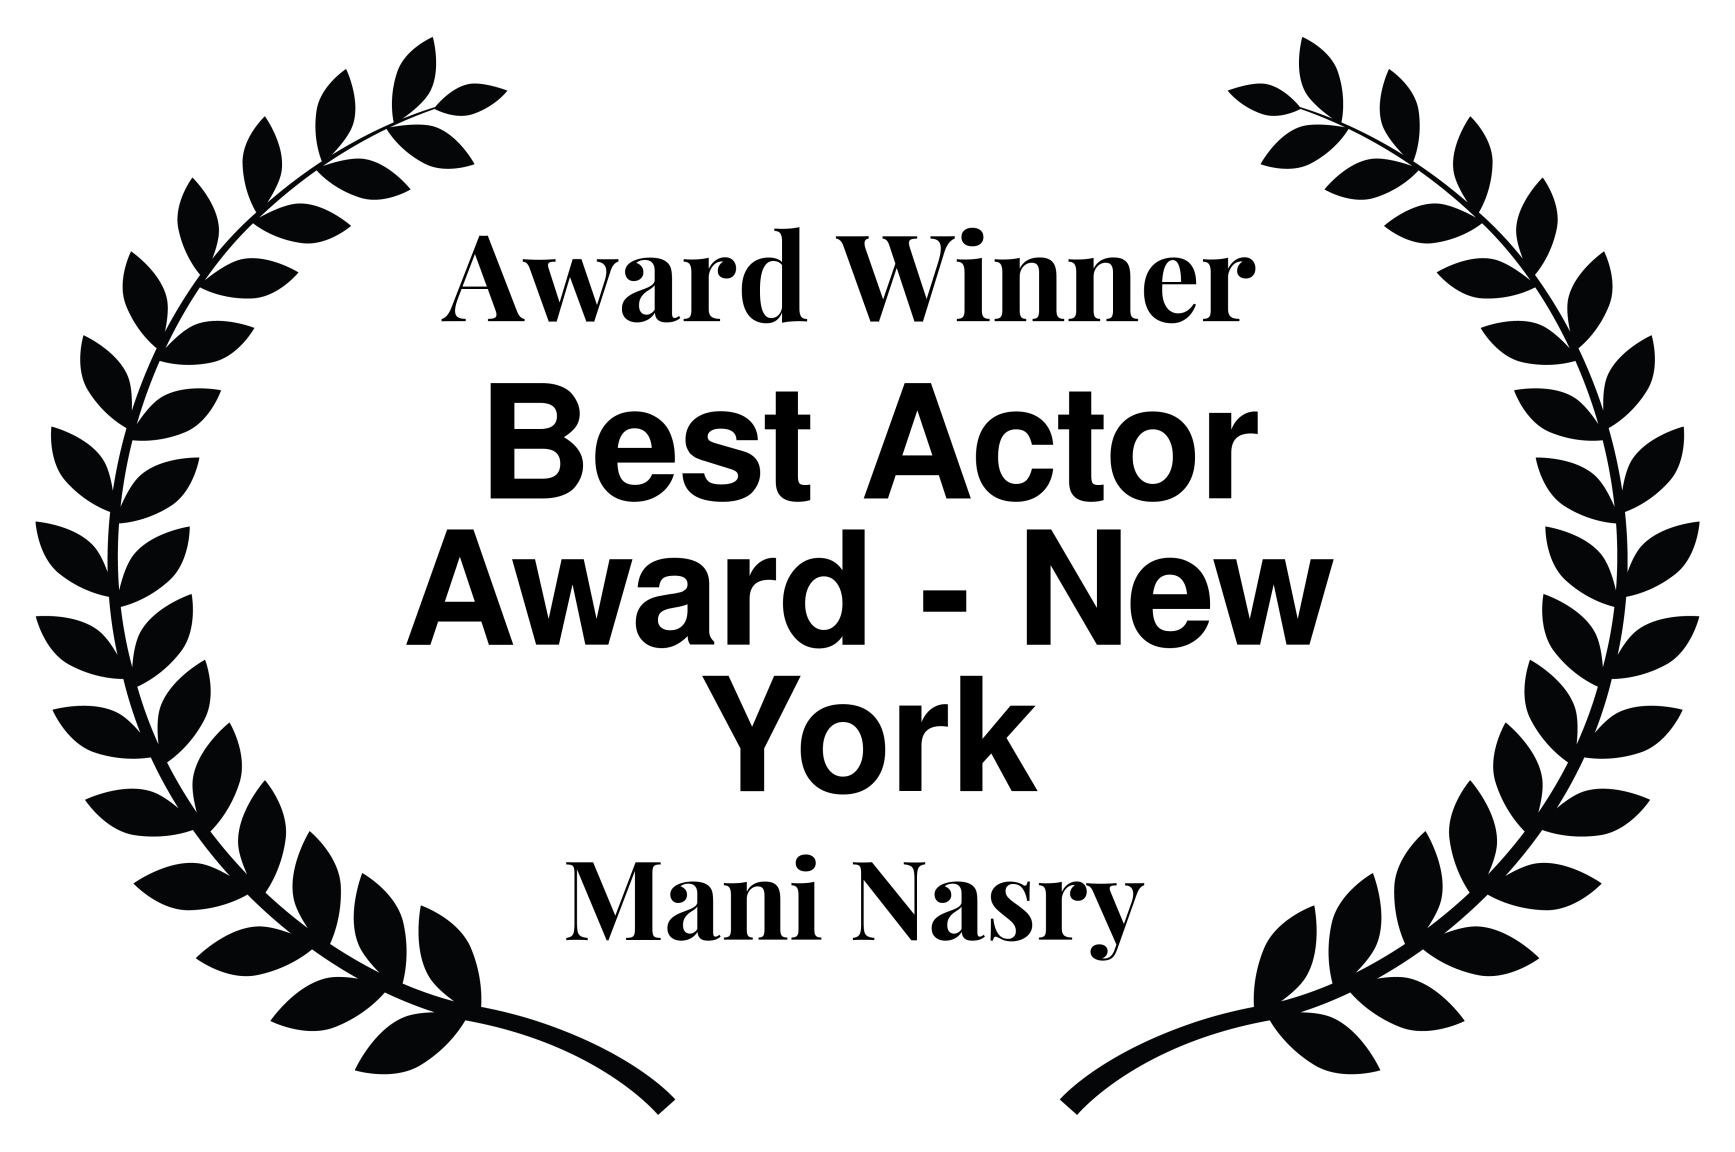 award-winner-best-actor-award-new-york-mani-nasry-1-1